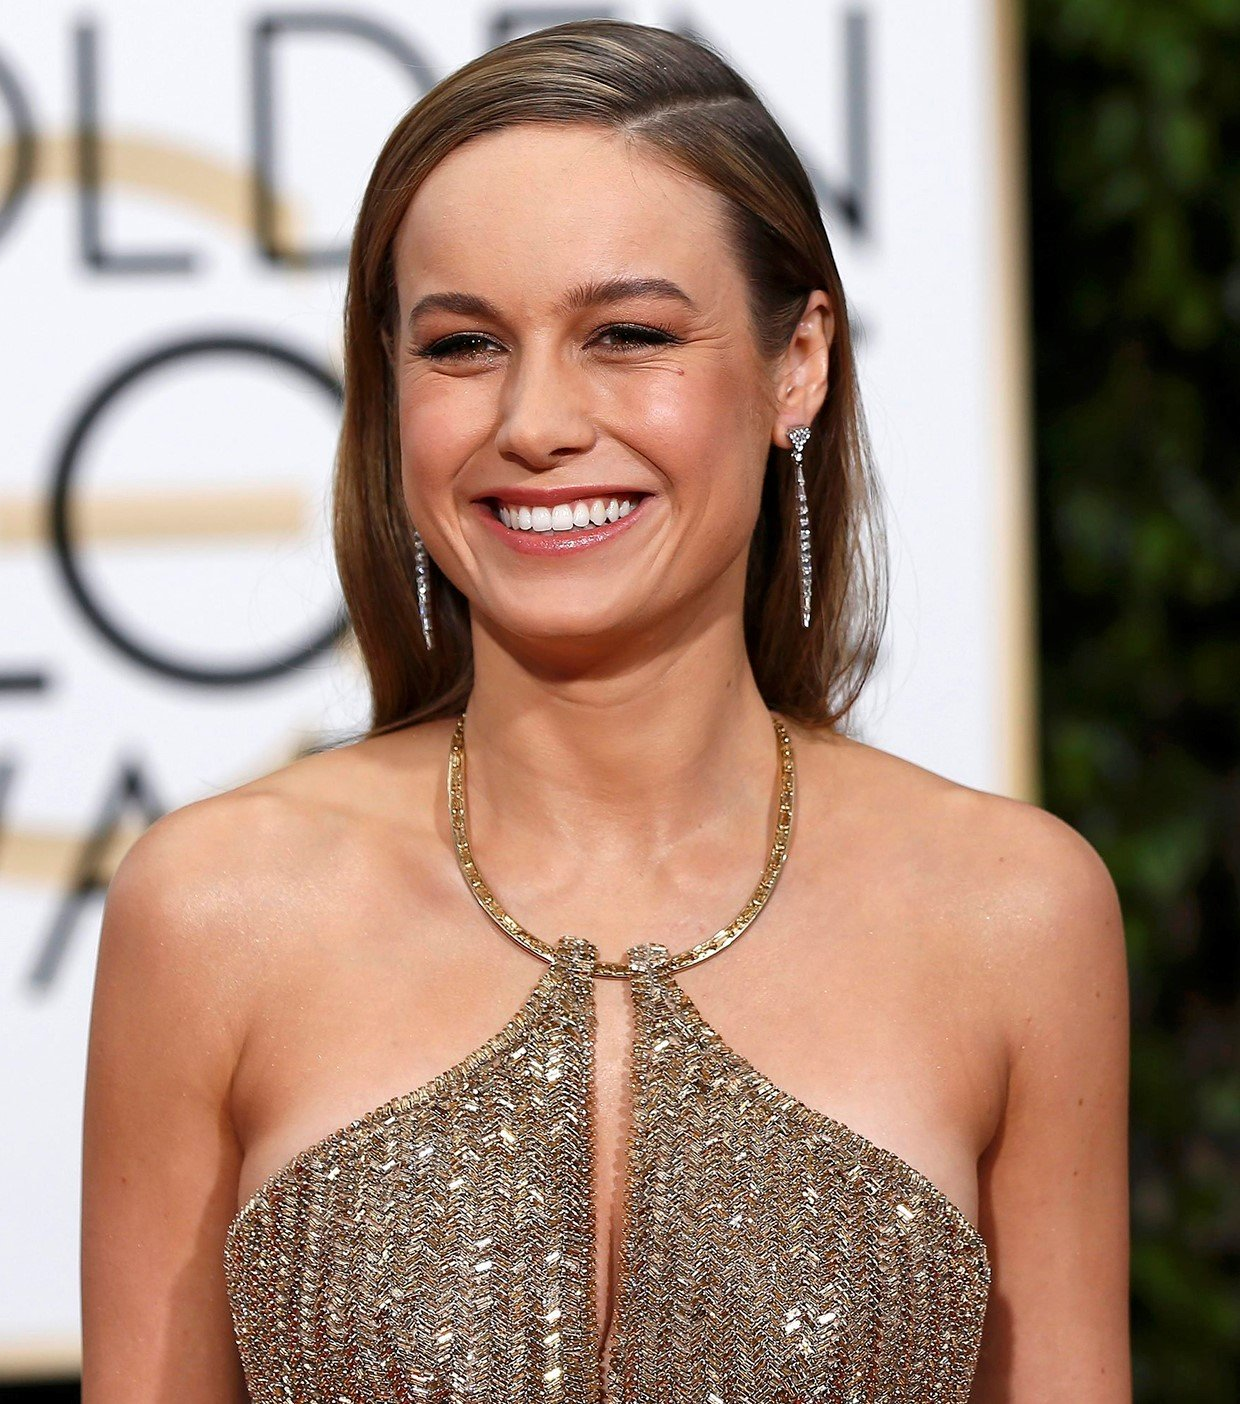 brie larson today tease 4 160114 90573fcb69f1803ac539a9f8871ef1a4 20 Facts You Never Knew About The Cast Of The Marvel Cinematic Universe